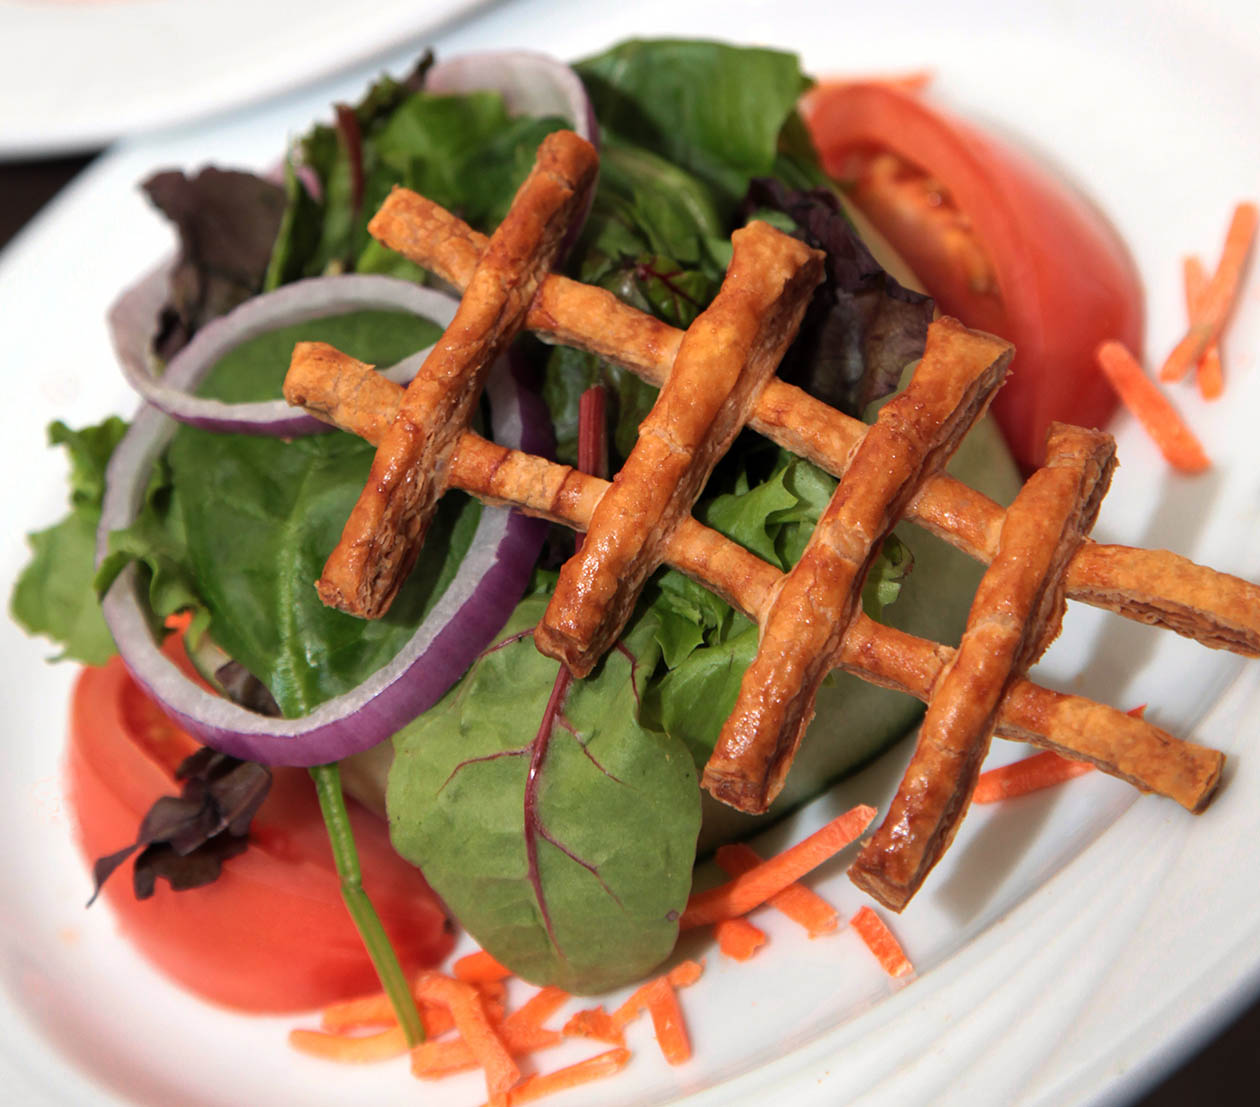 Salad on a Plate topped with a Pretzel